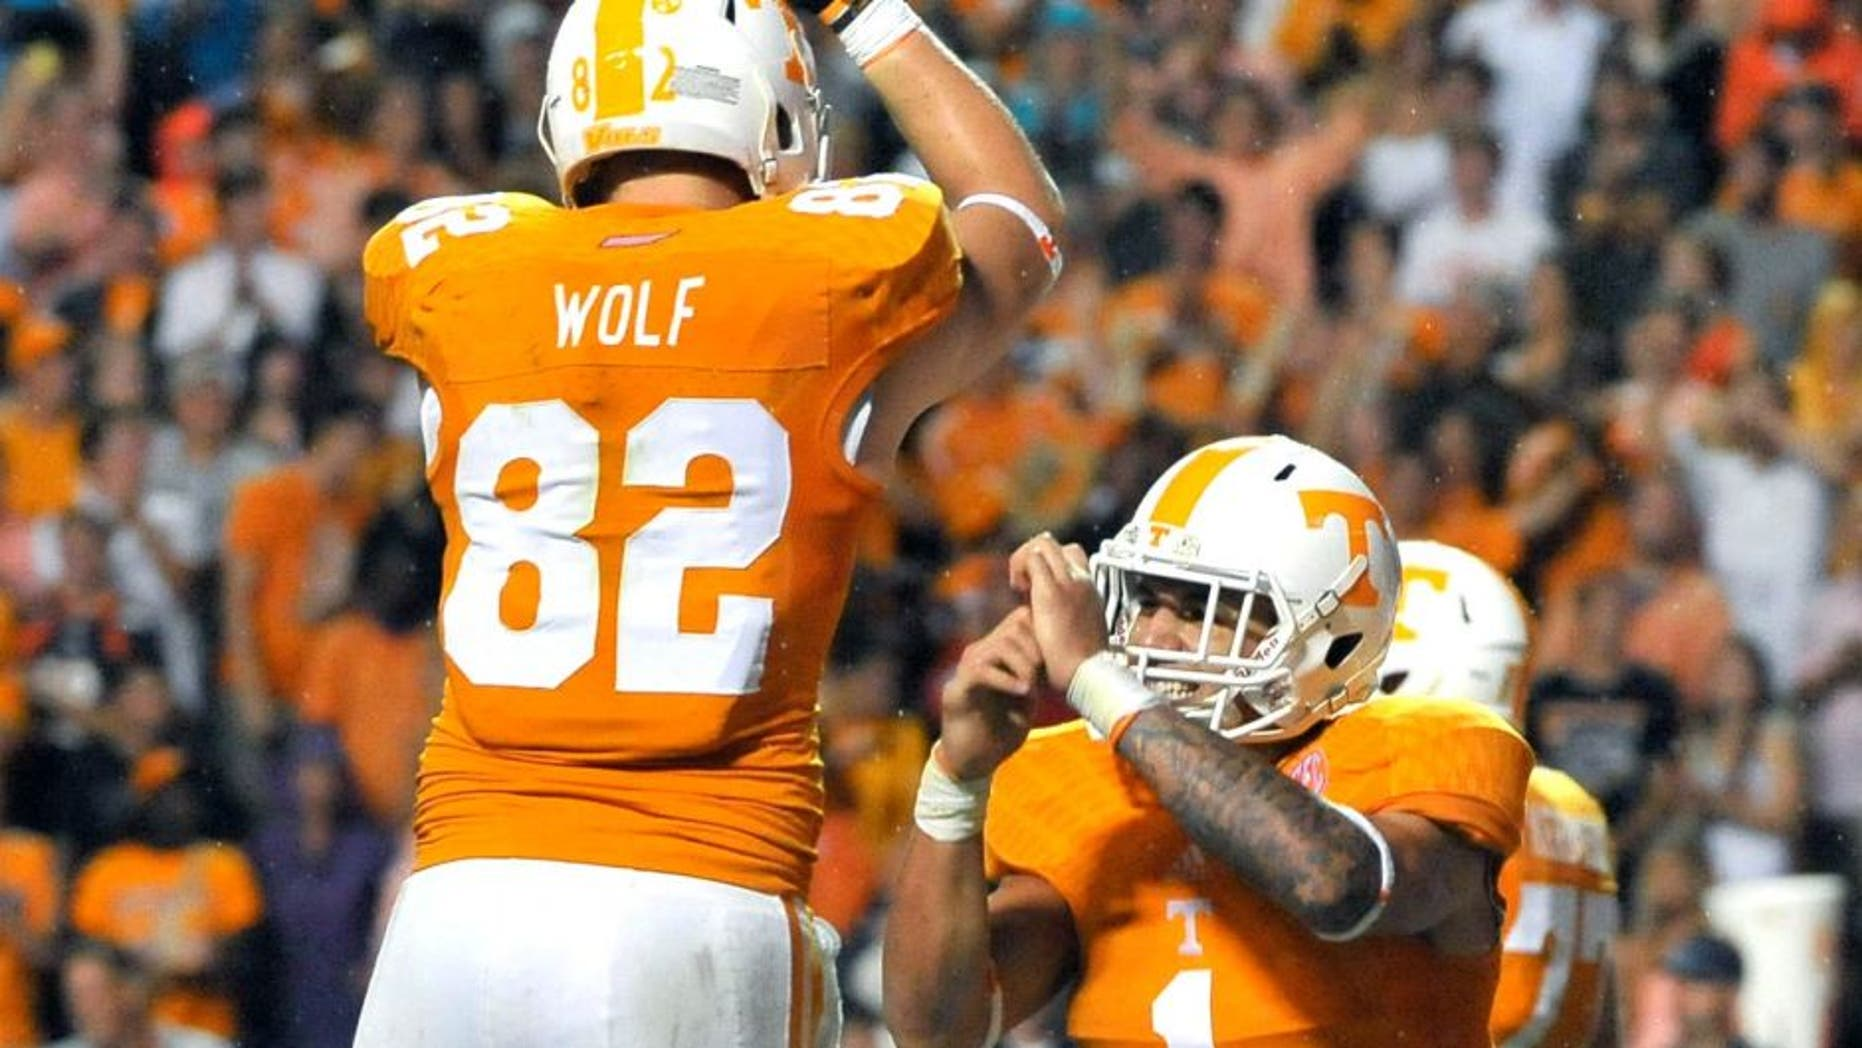 Aug 31, 2014; Knoxville, TN, USA; Tennessee Volunteers running back Jalen Hurd (1) celebrates scoring his first college career touchdown against the Utah State Aggies with teammate Tennessee tight end Ethan Wolf (82) during the second half at Neyland Stadium. Tennessee won 38-7. Mandatory Credit: Jim Brown-USA TODAY Sports